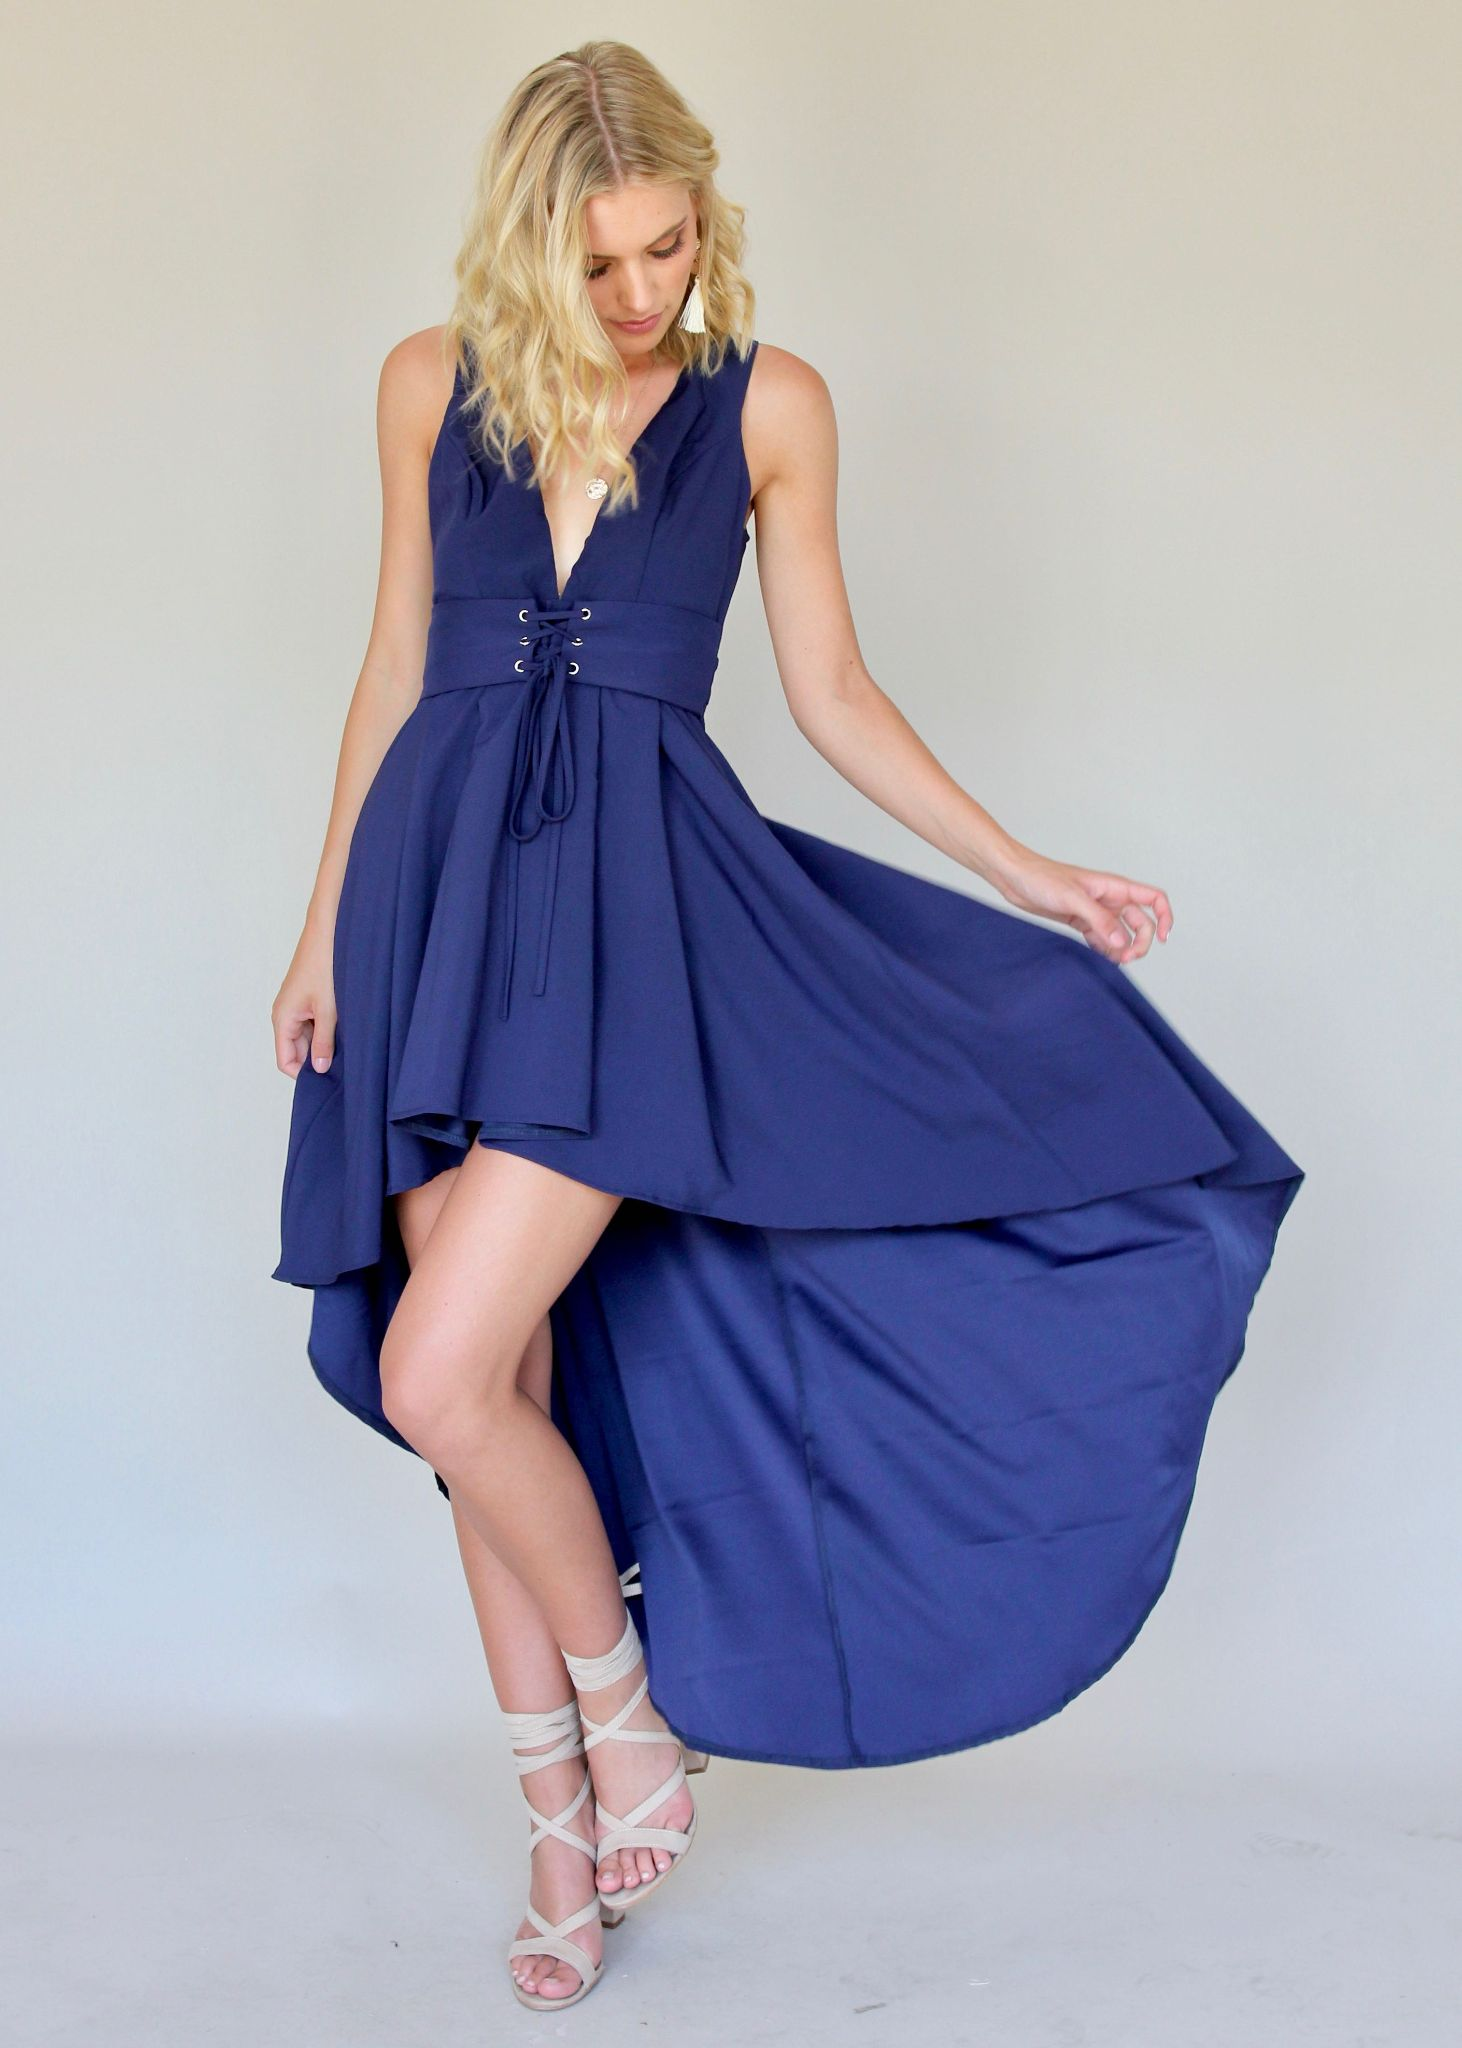 As You Were Dress - Navy